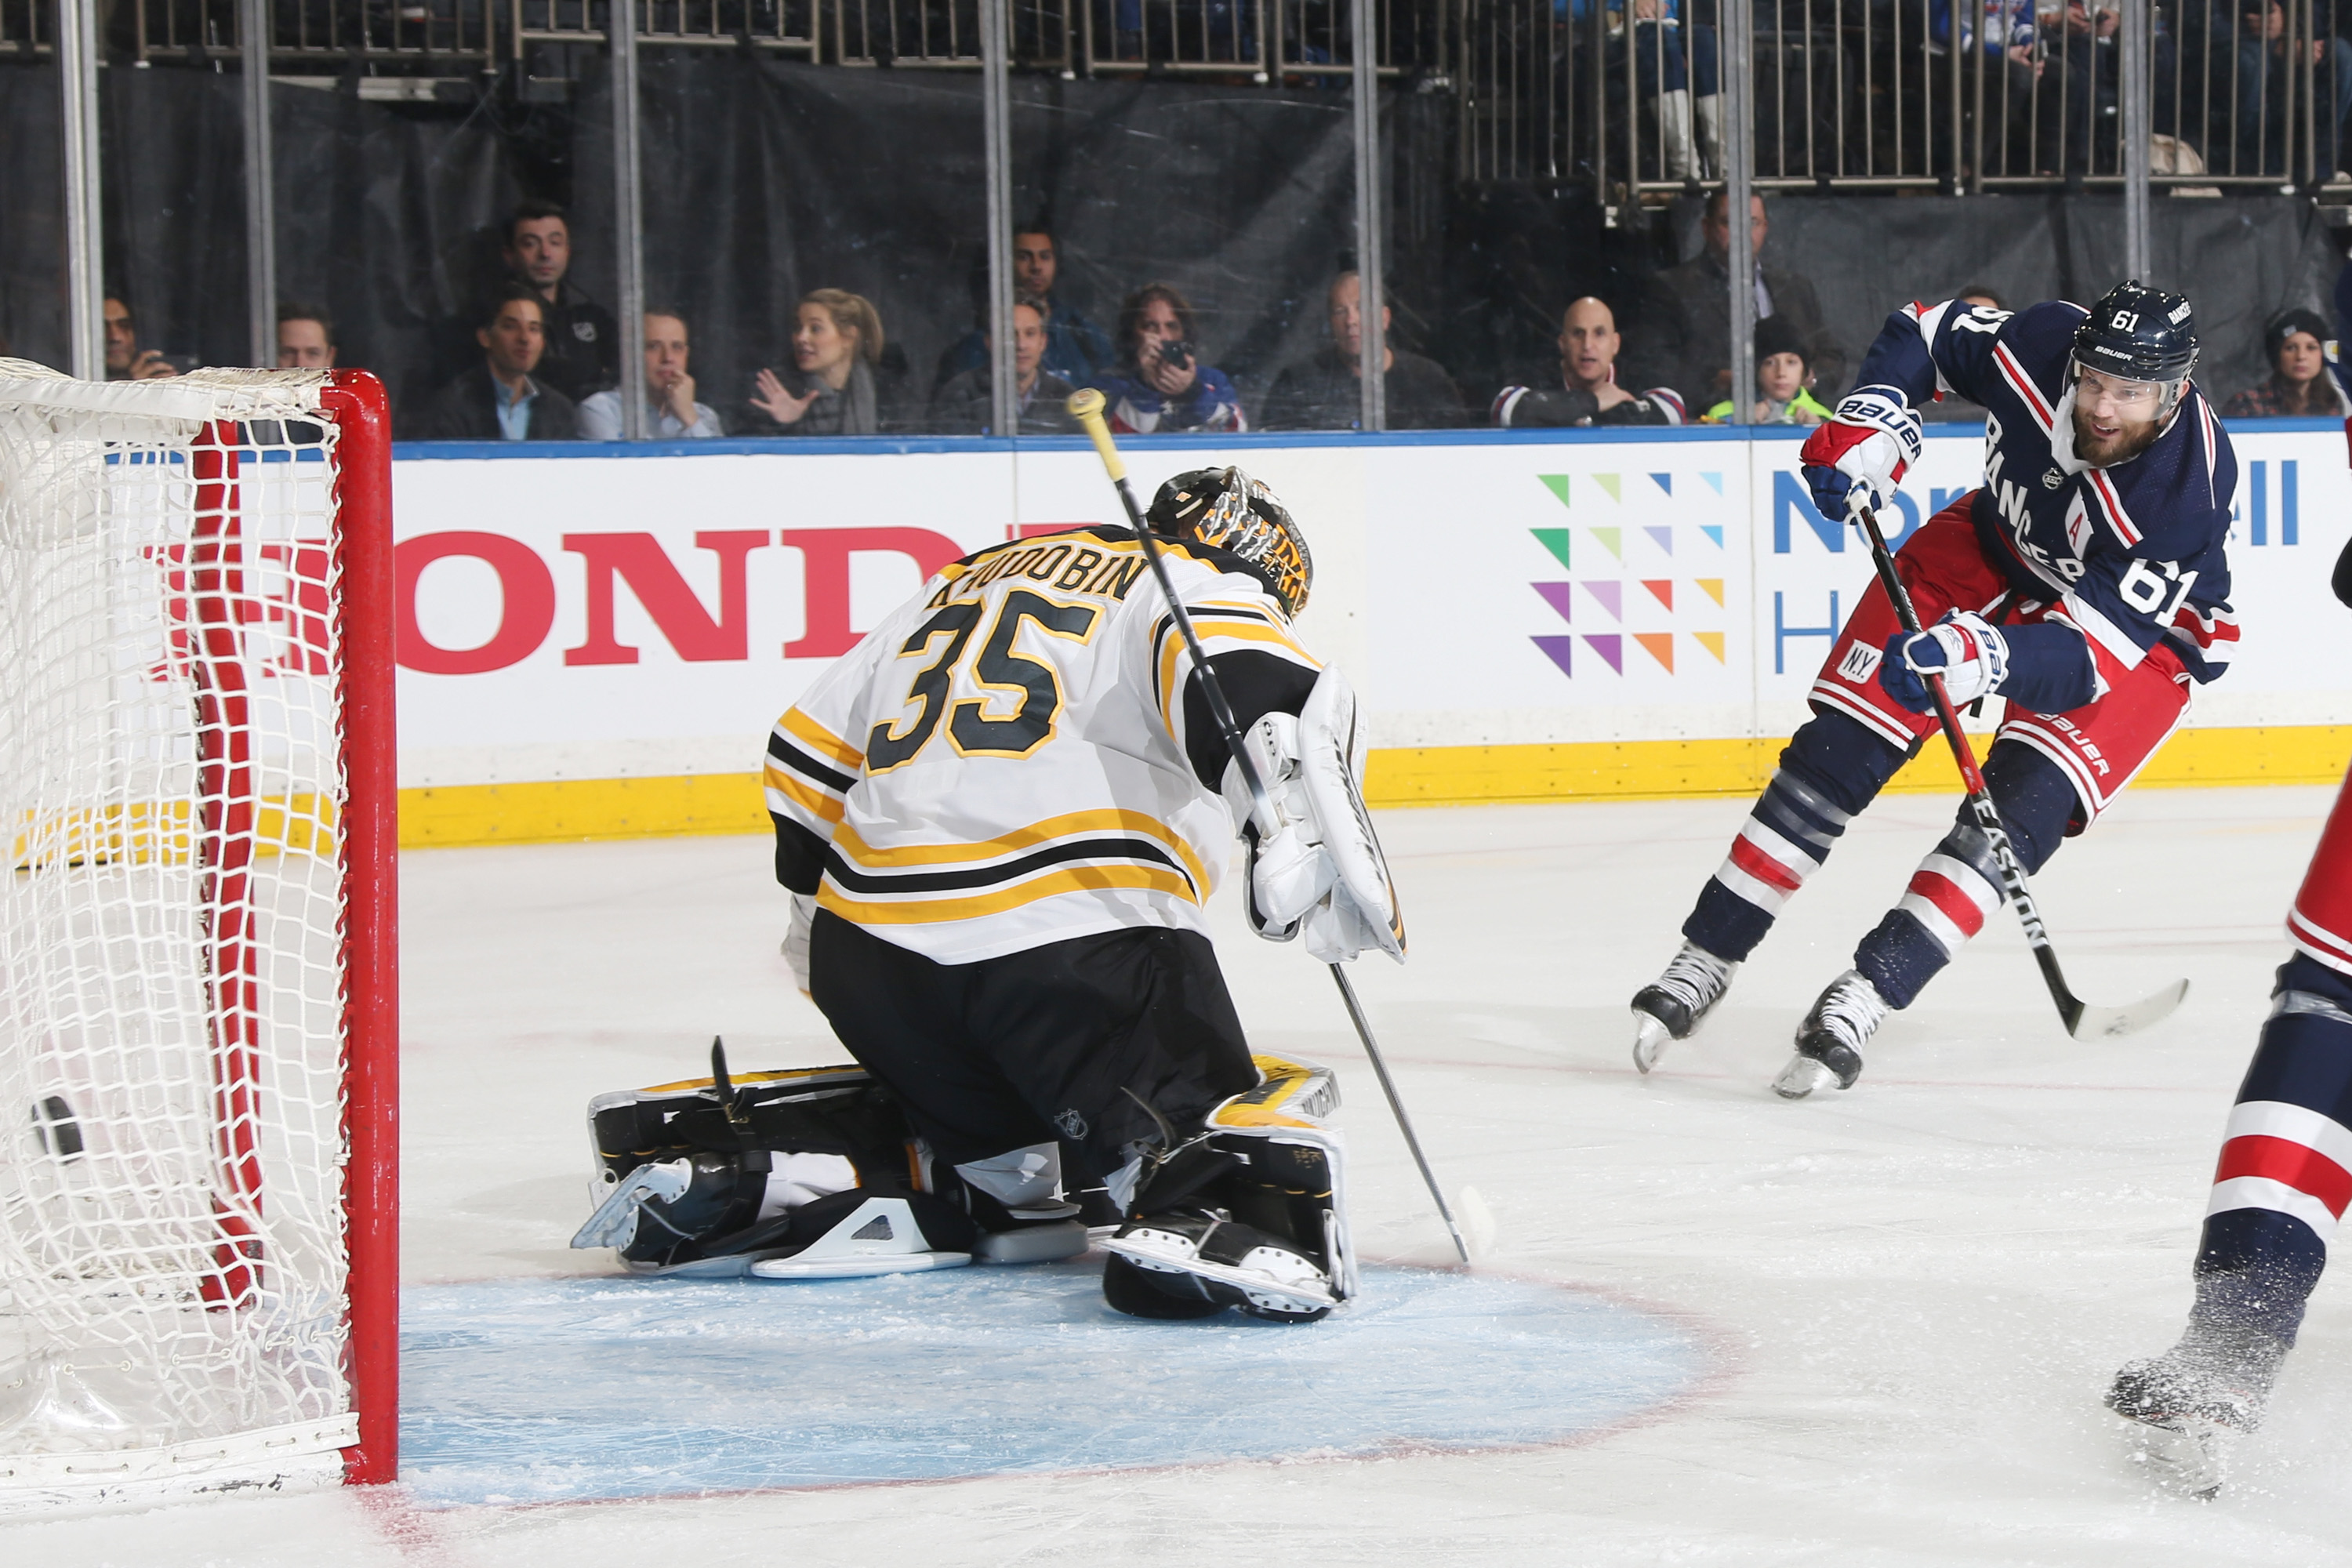 National Hockey League trade deadline: Bruins acquire Rick Nash from Rangers in blockbuster